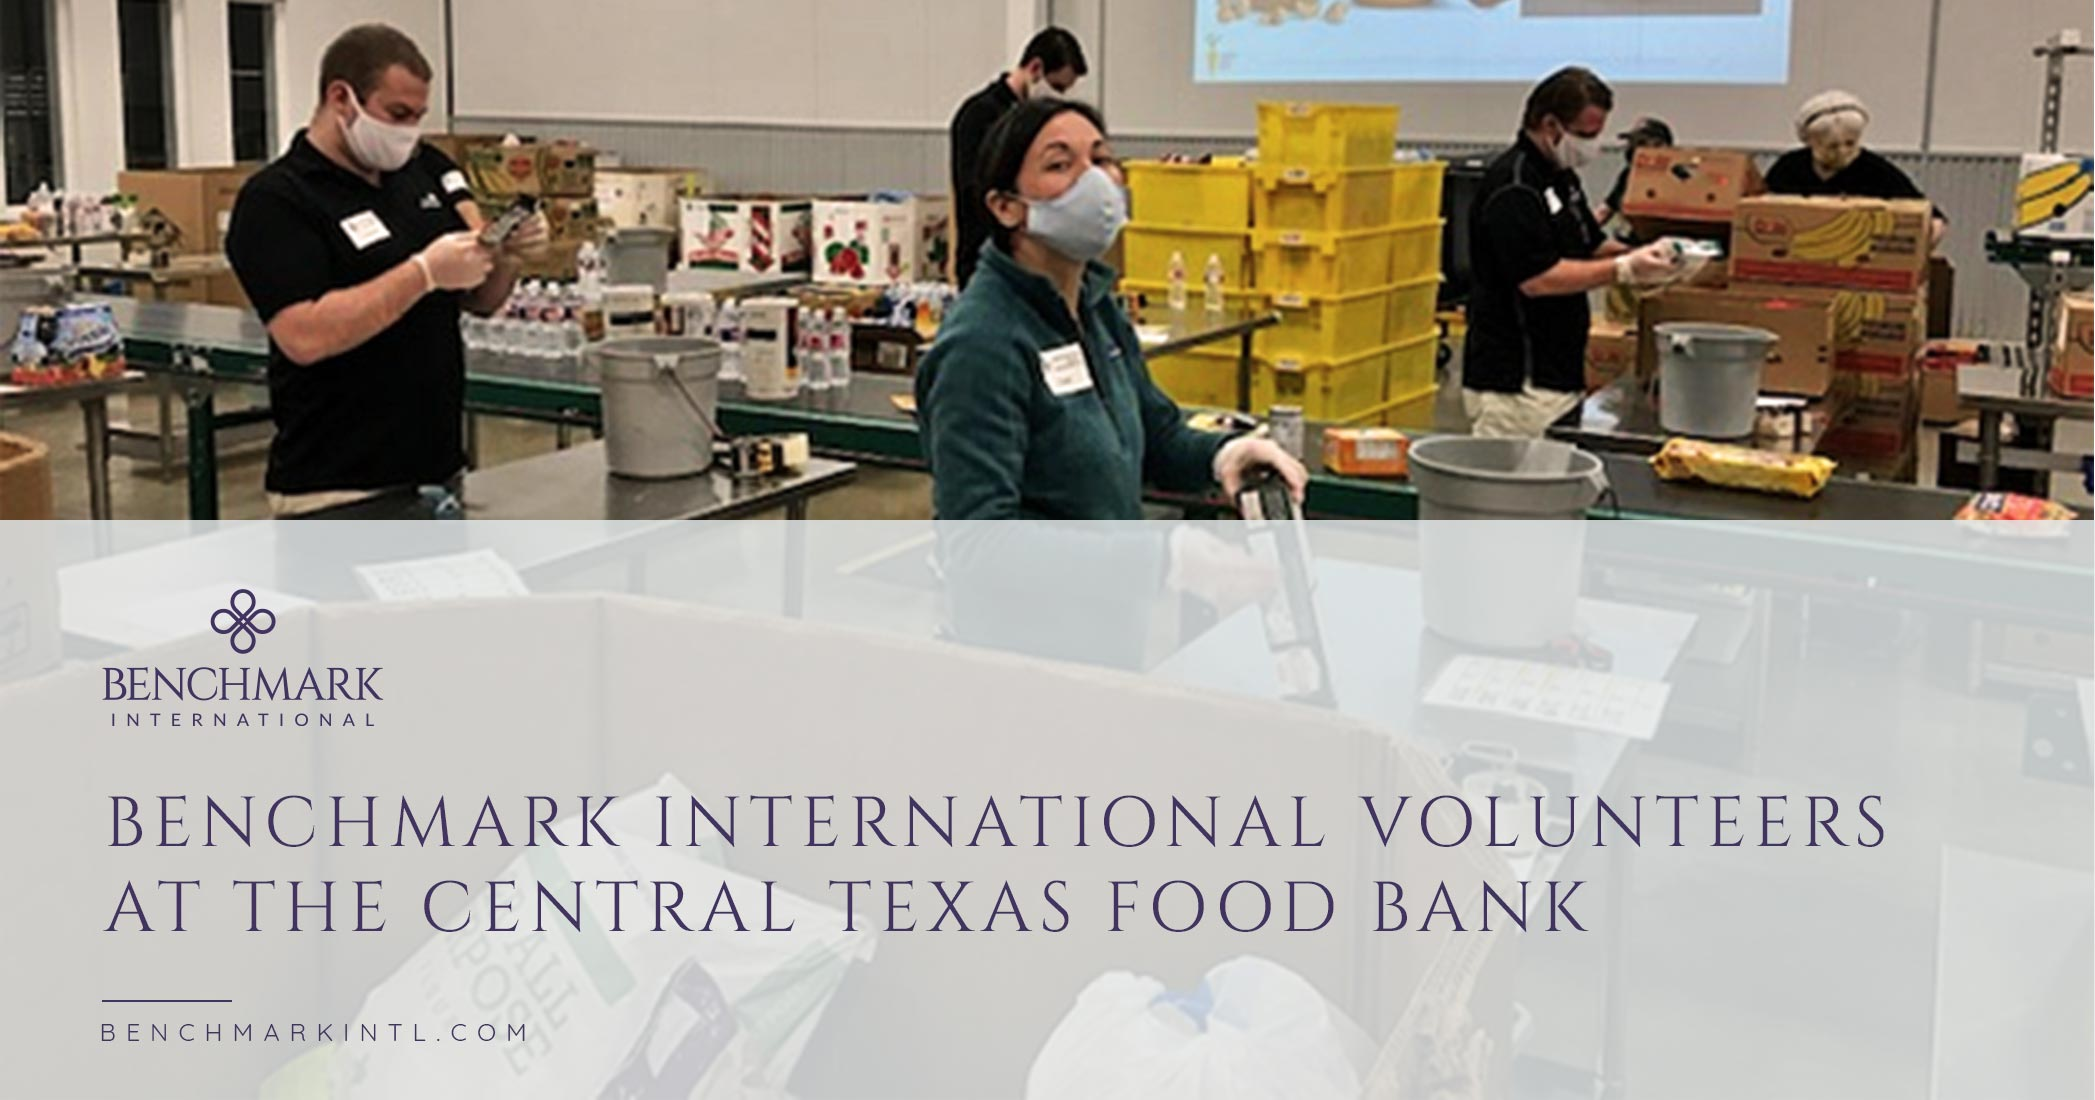 Benchmark International Volunteers At The Central Texas Food Bank